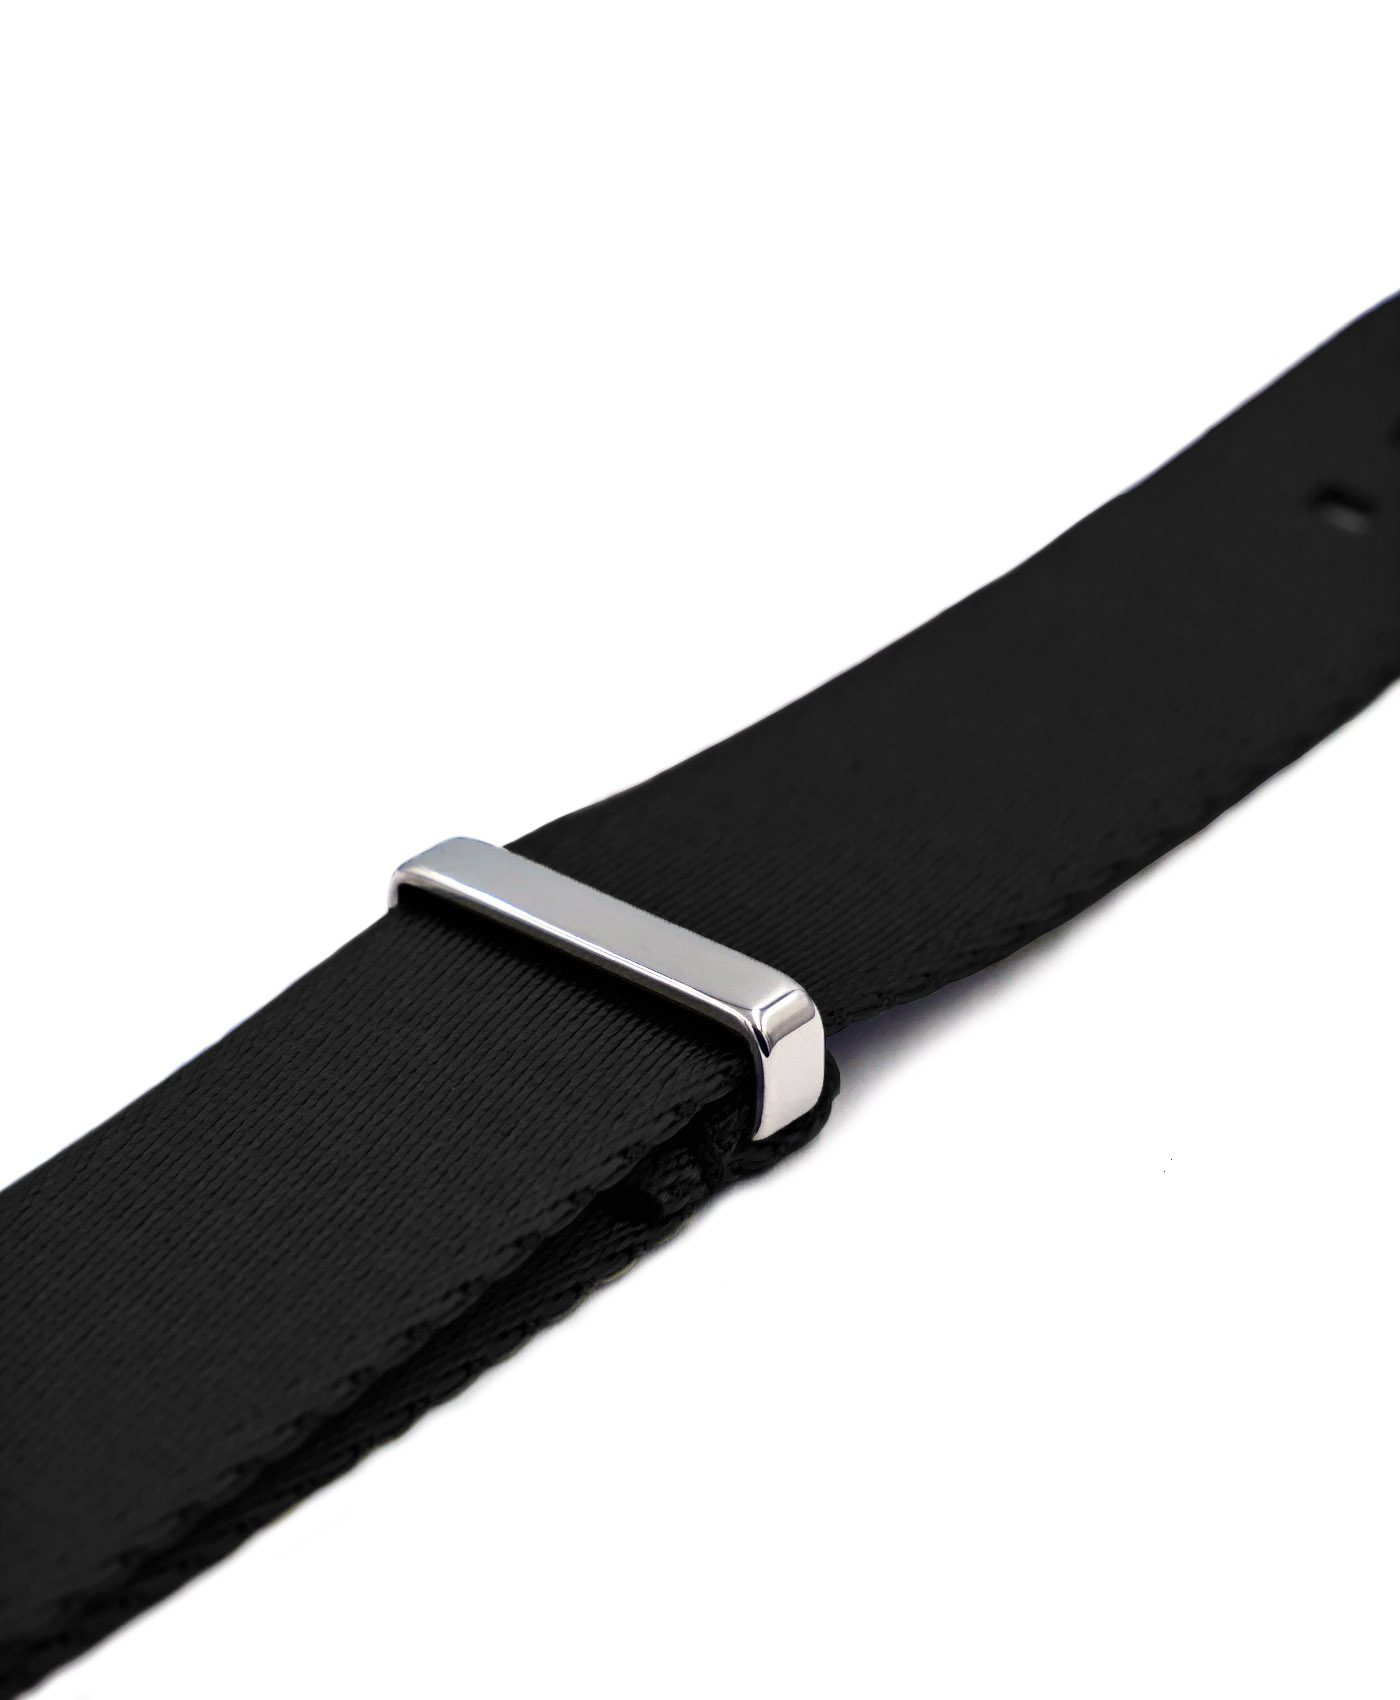 Premium 1.2 mm seat belt NATO Strap black side by WatchBandit